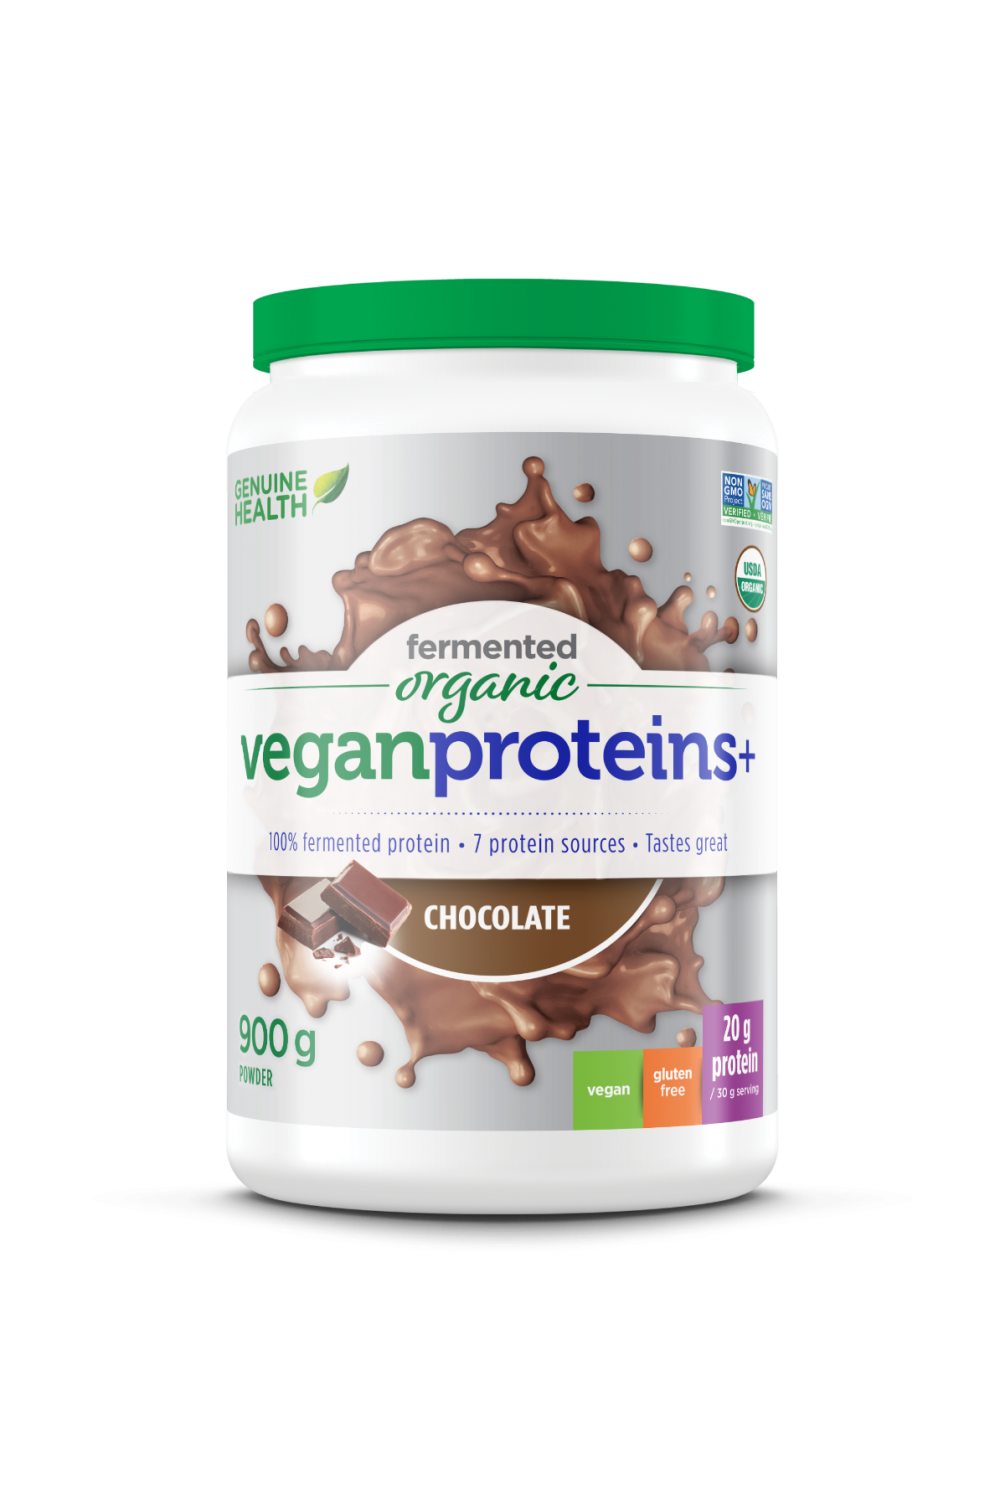 Genuine Health Organic Fermented Vegan Protein+ - Natural Chocolate Flavour 900g